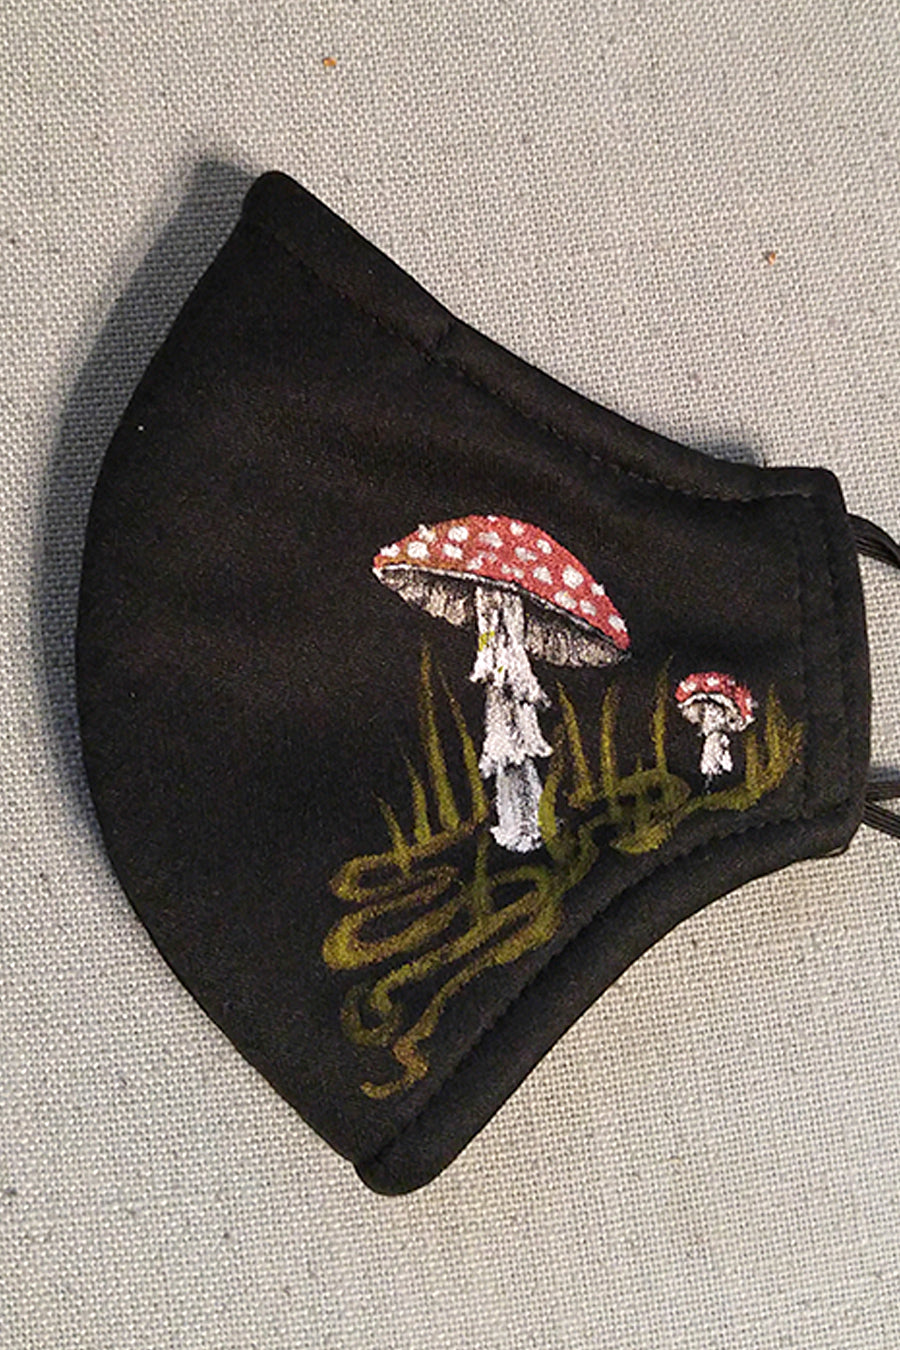 Toadstool Adult Size Artist Mask Donation